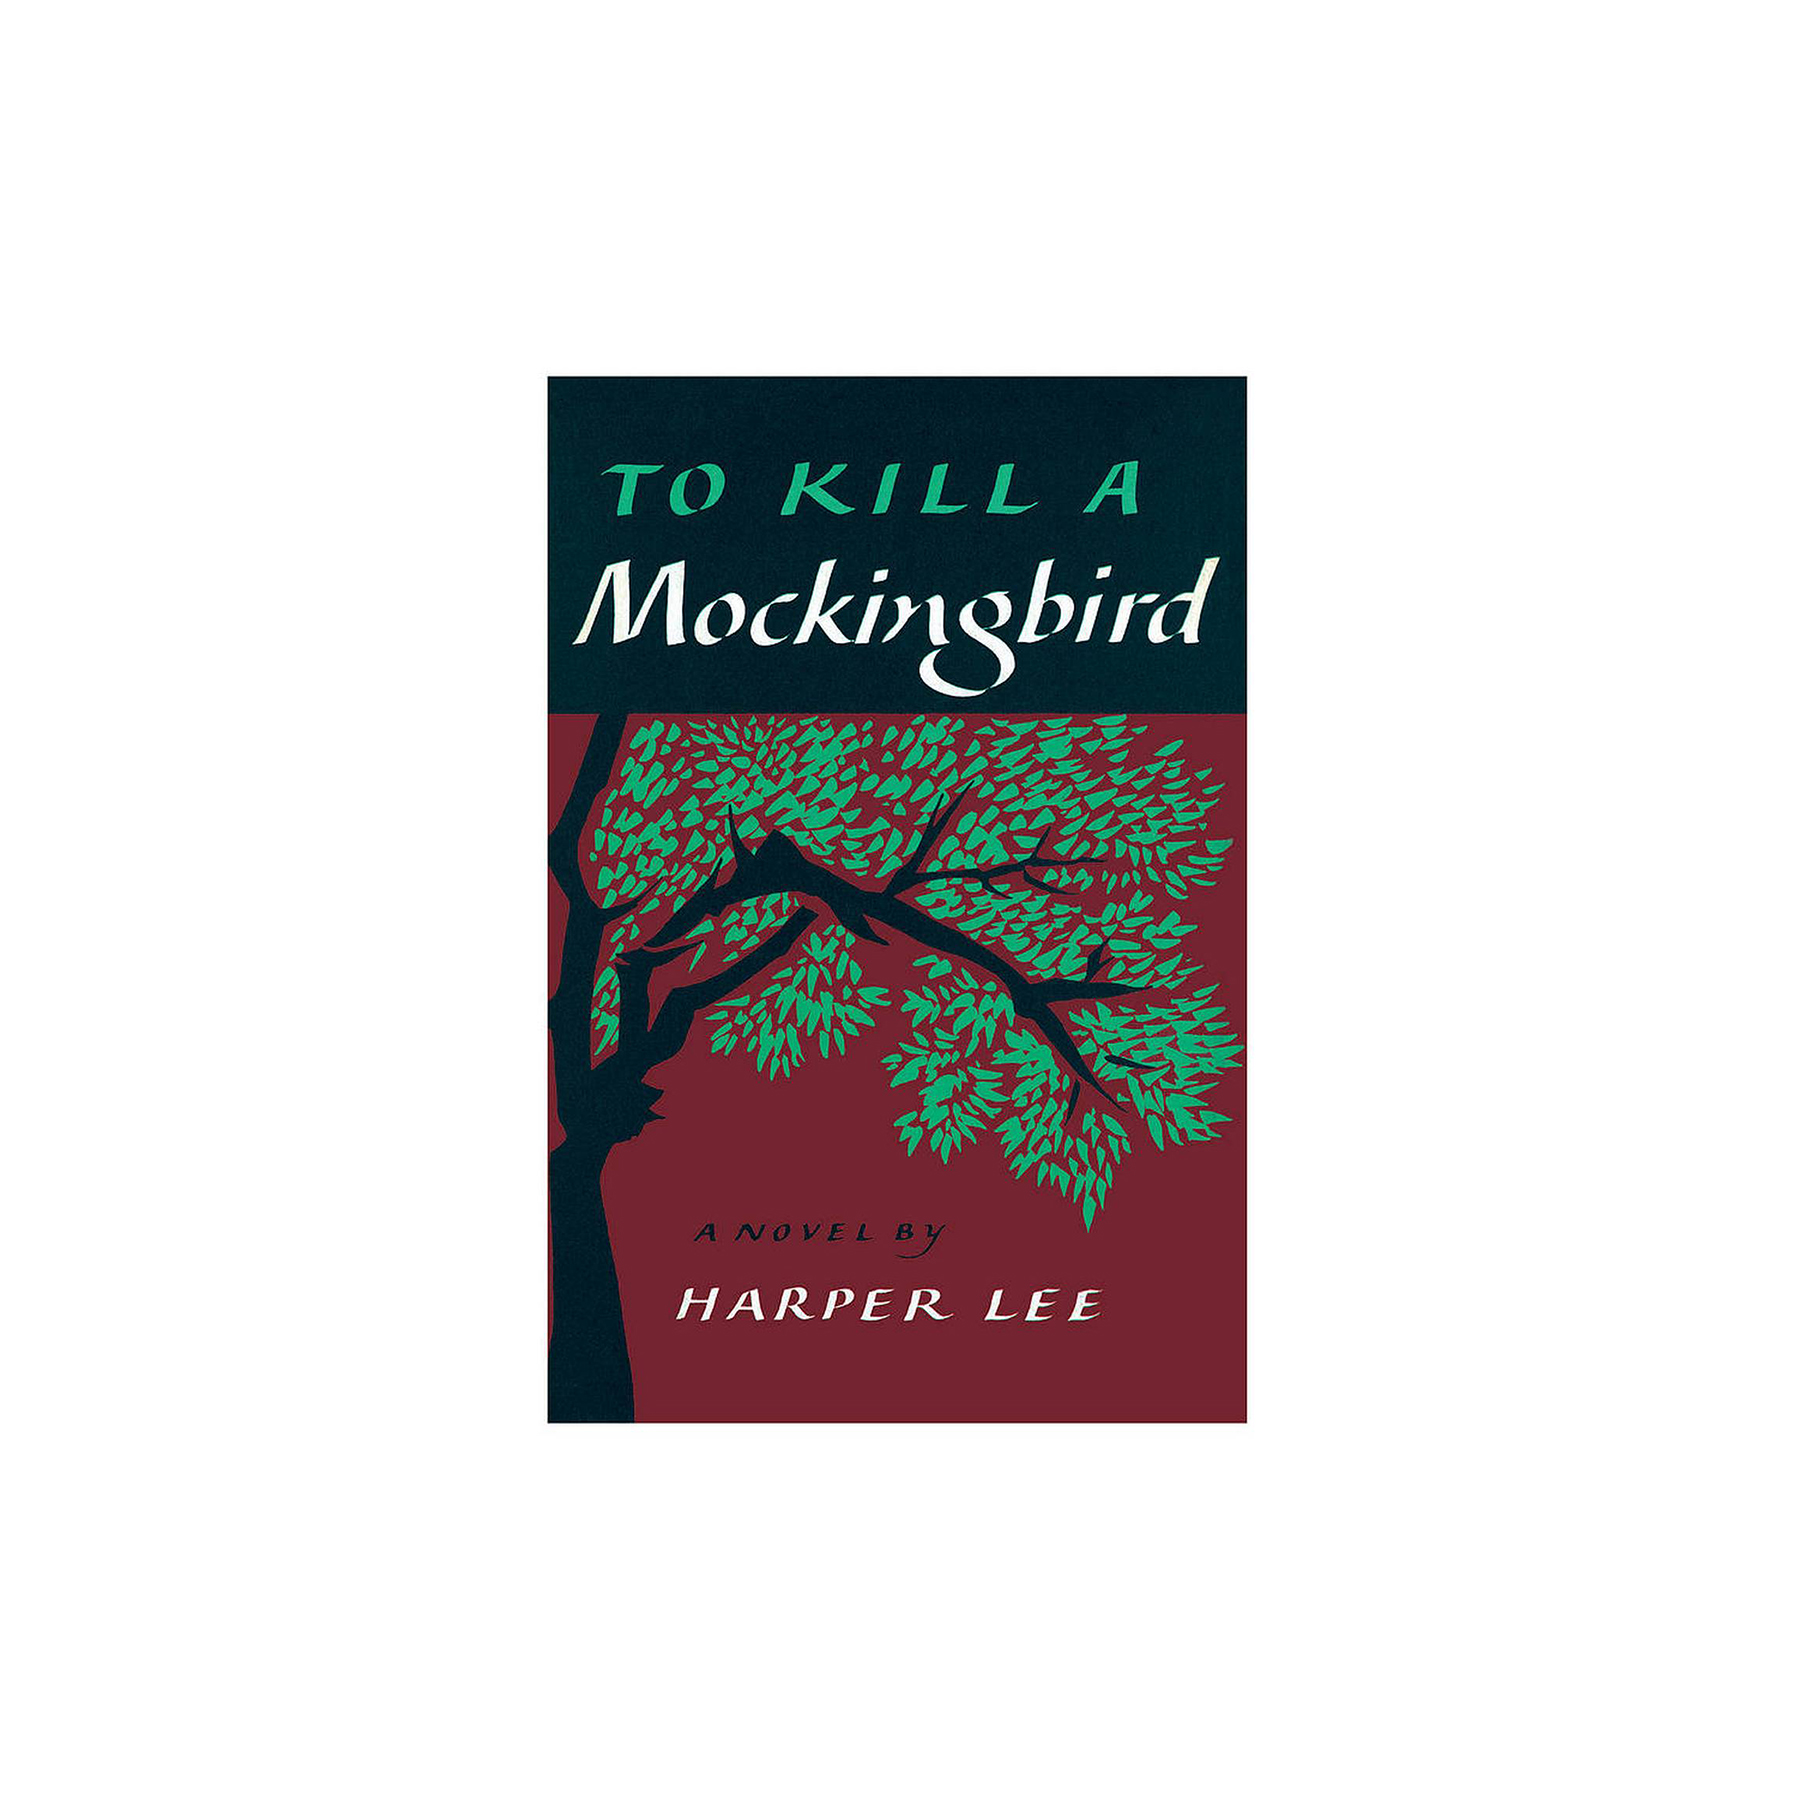 an analysis of the theme of racism in to kill a mockingbird by harper lee A summary of the theme of education throughout to kill a mockingbird by harper lee  such as racism,  theme of education in to kill a mockingbird.